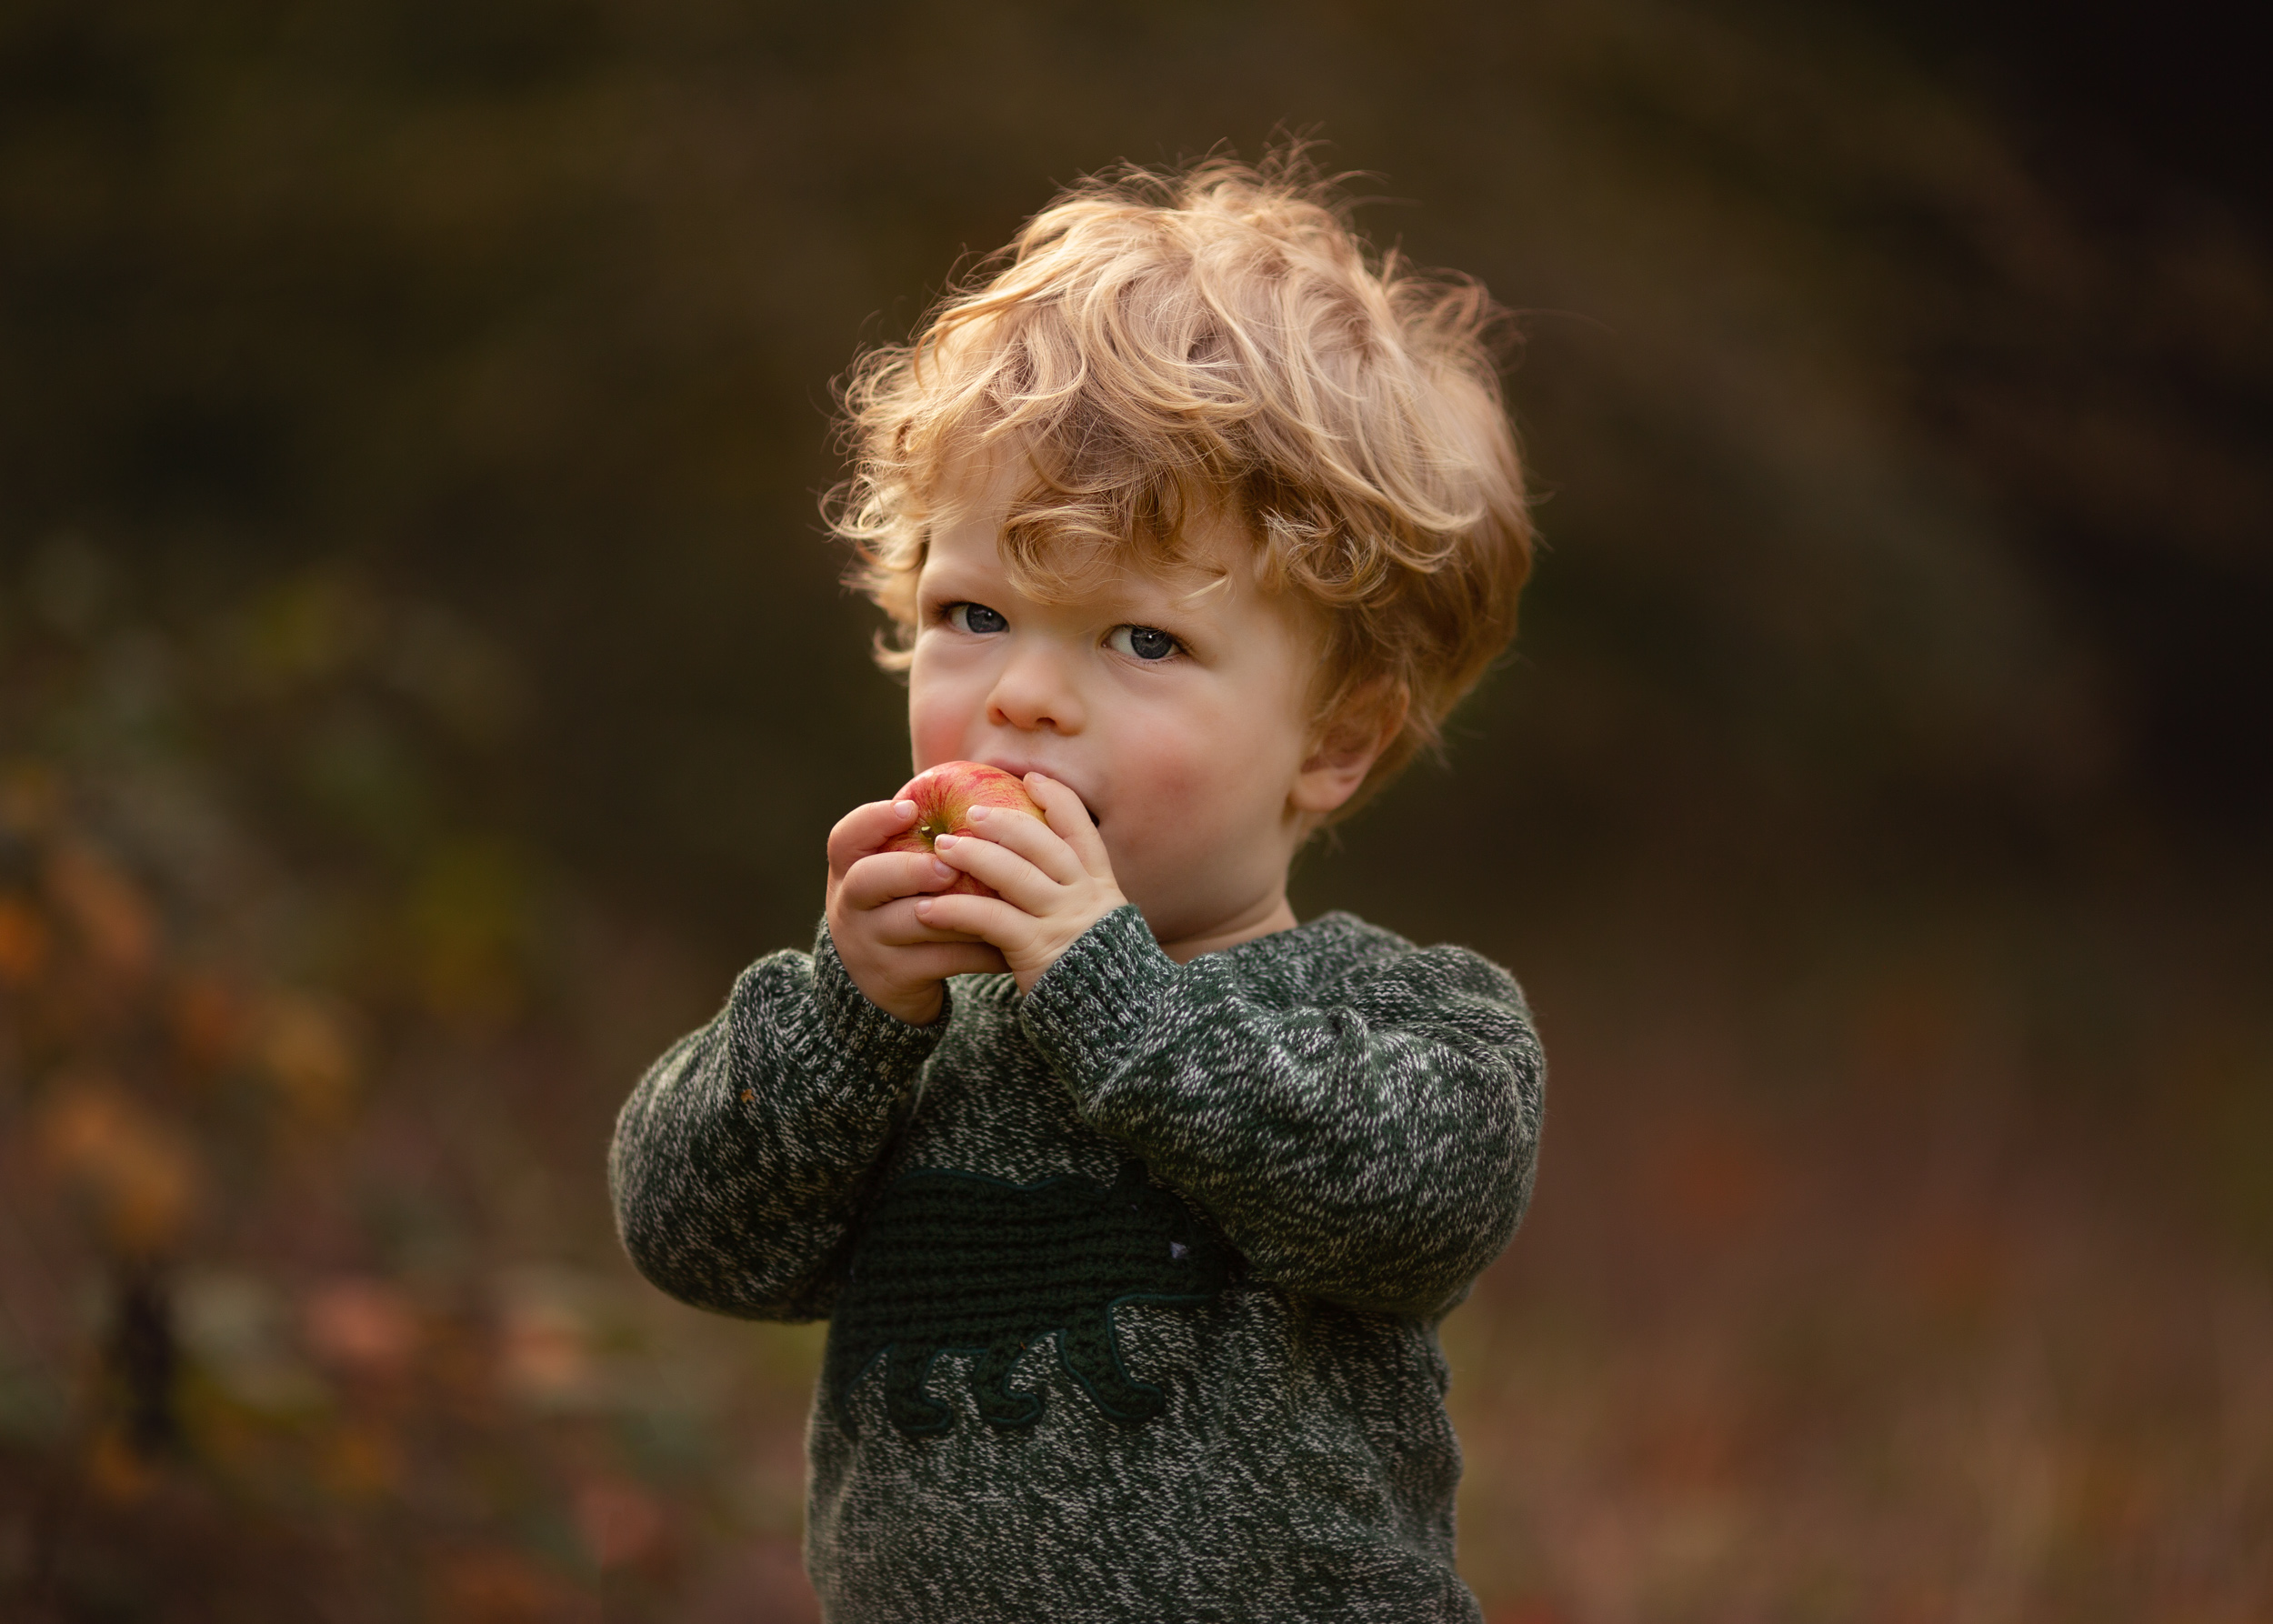 Rufus eating an apple outside during an outdoor family portrait session in Nantwich, Cheshire